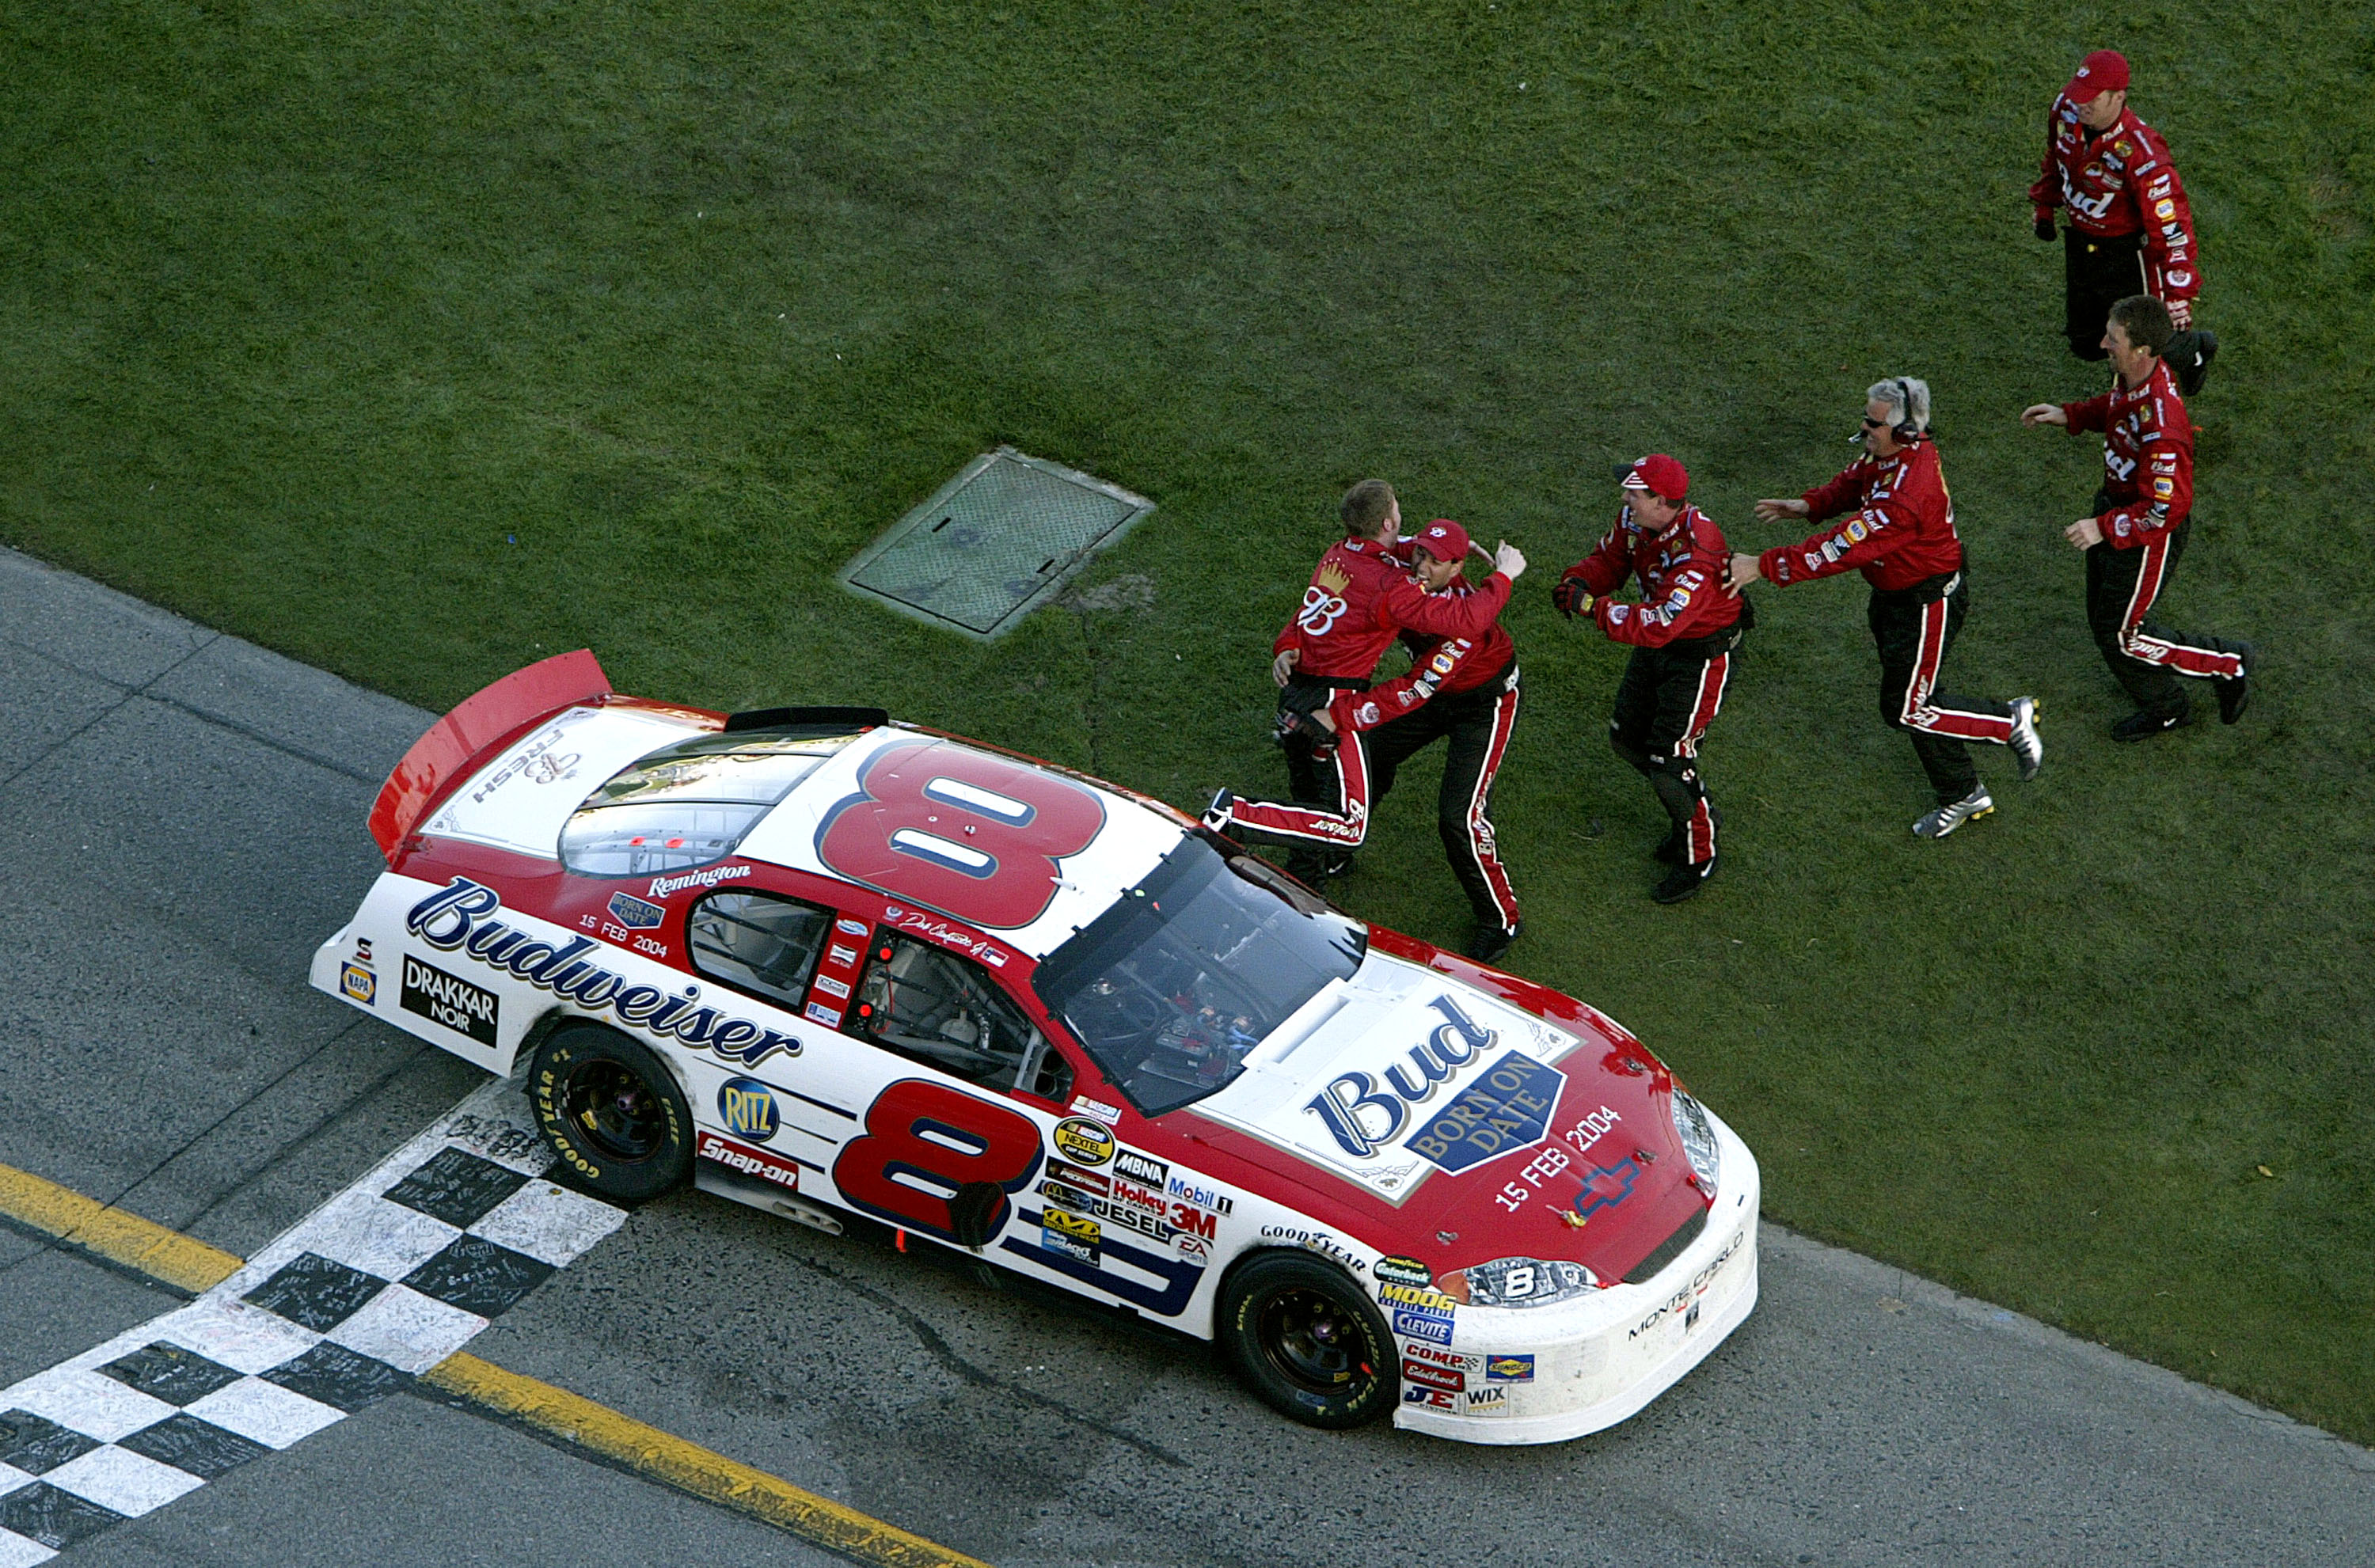 Dale Earnhardt Jr.s first win in Daytona 500 came much earlier in his career than his fathers first win.